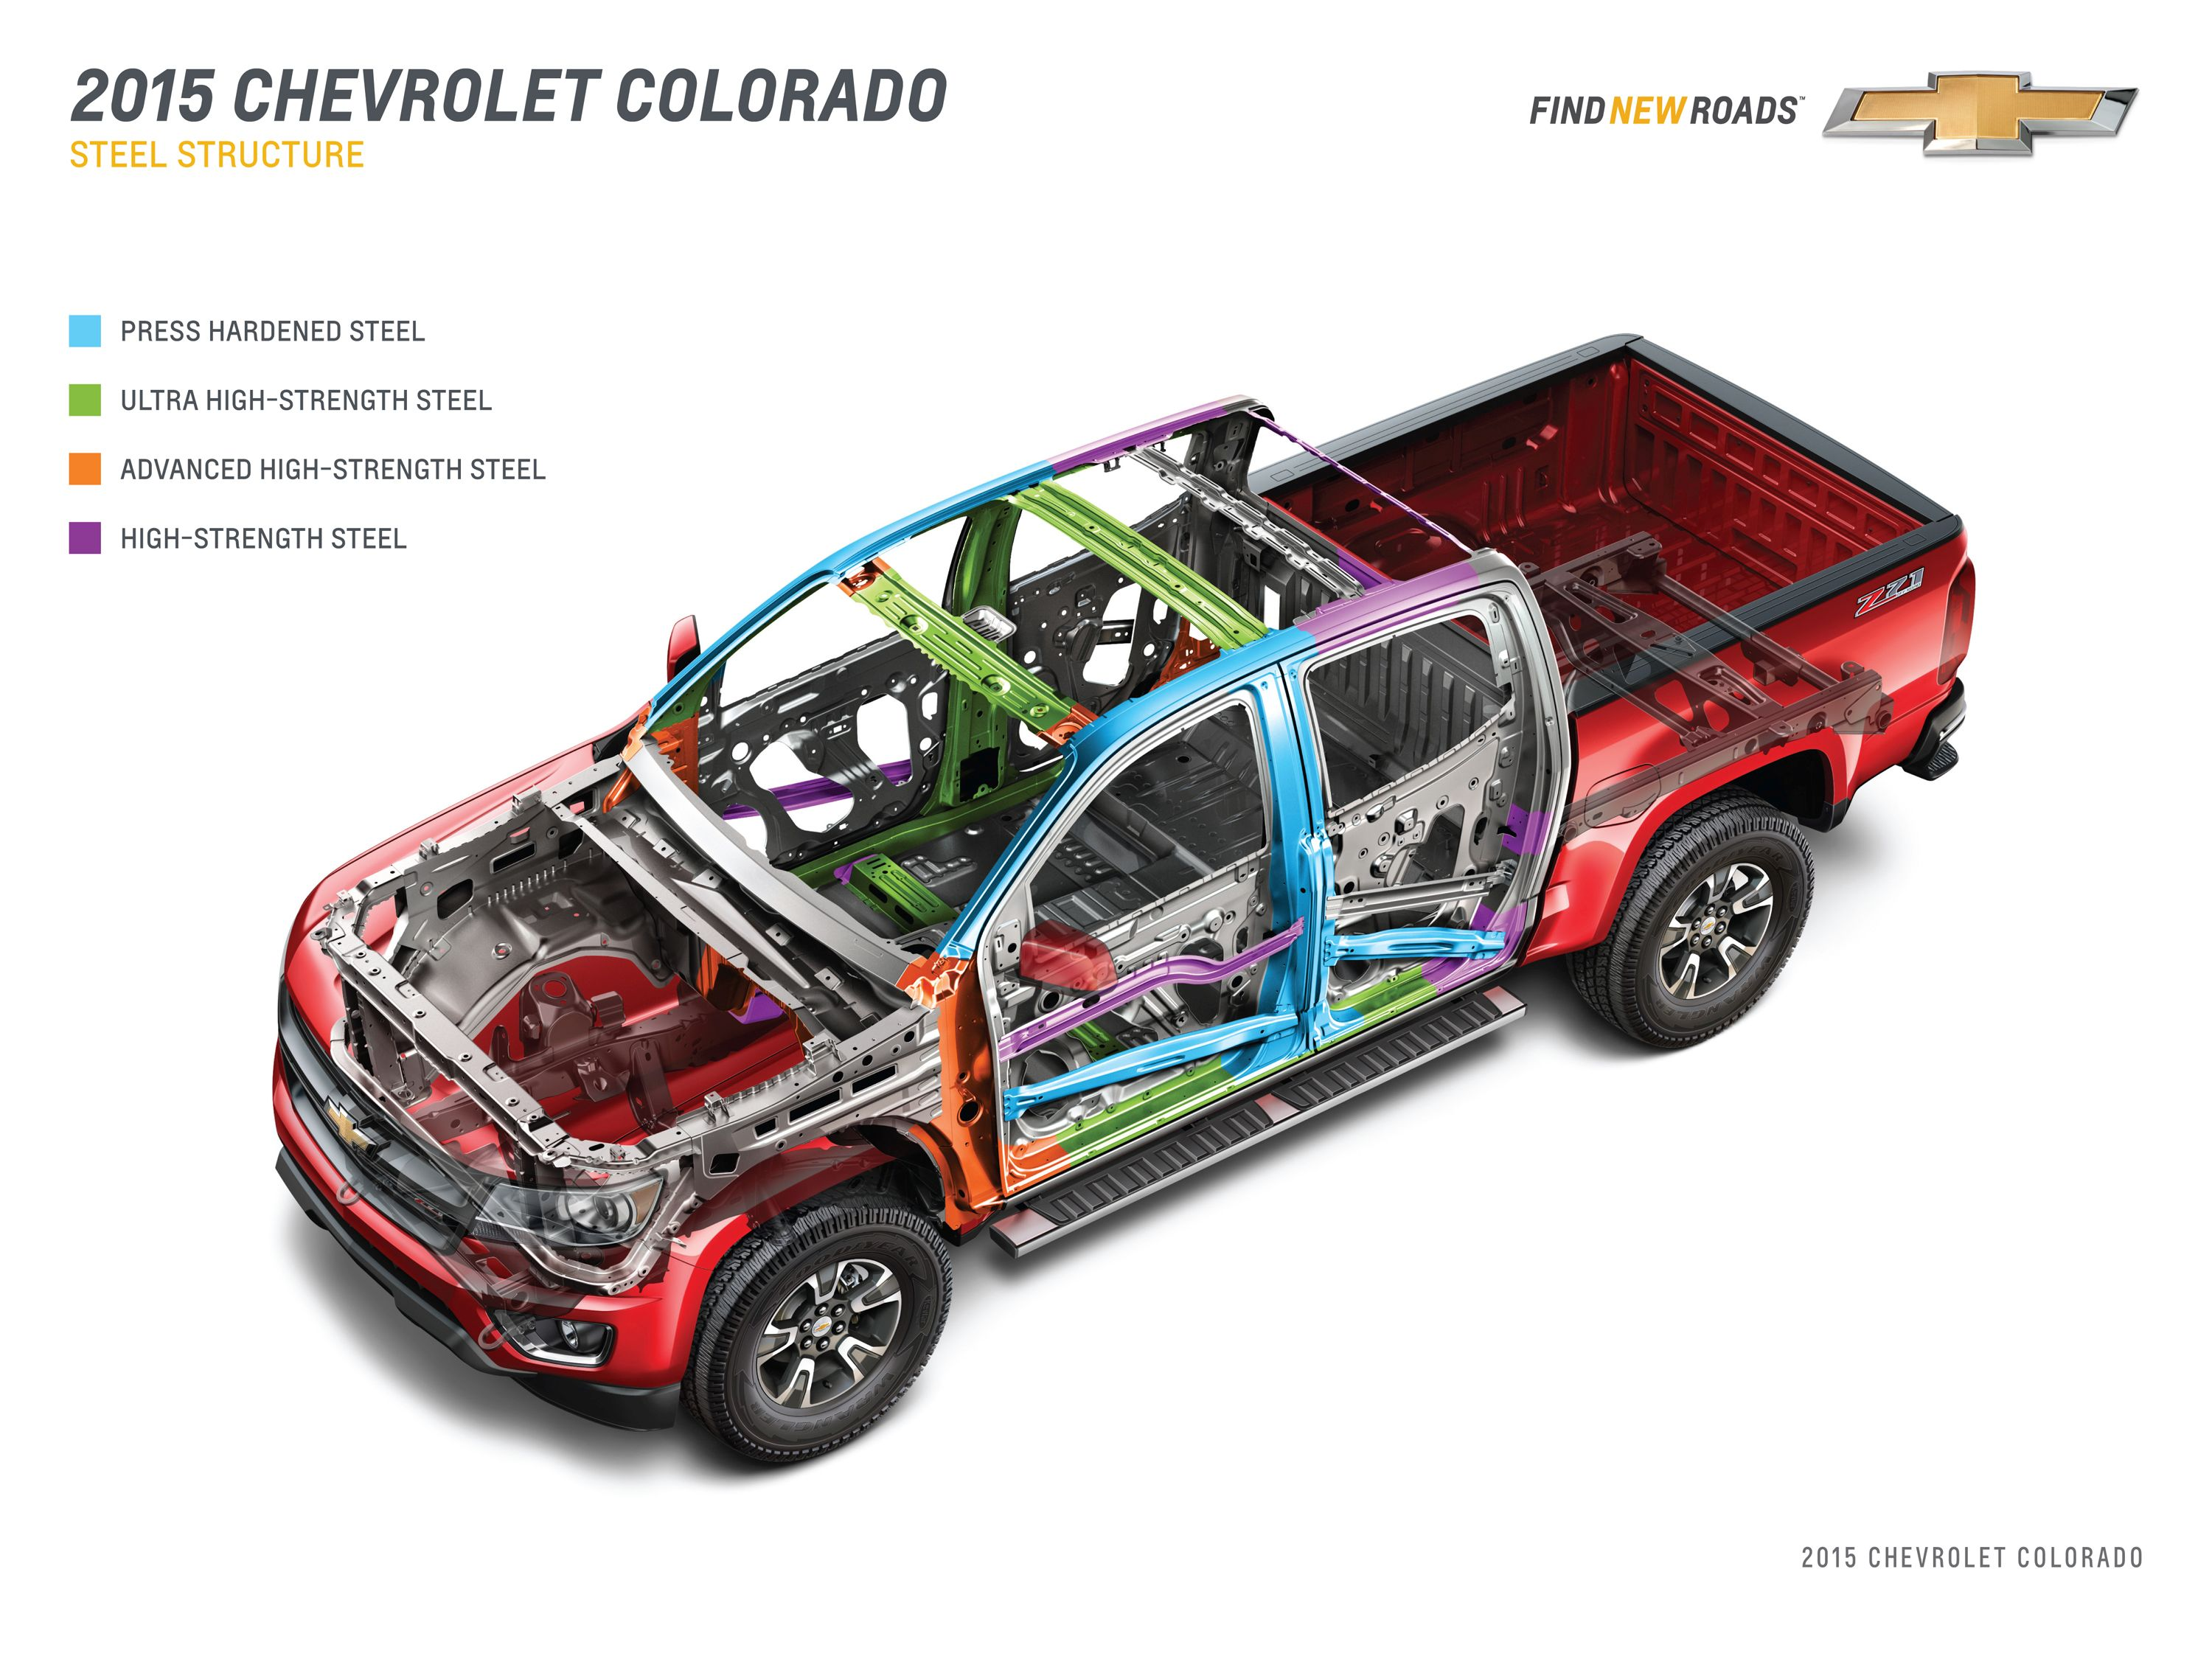 Chevrolet Colorado Uses Lightweighting to Create Efficiency